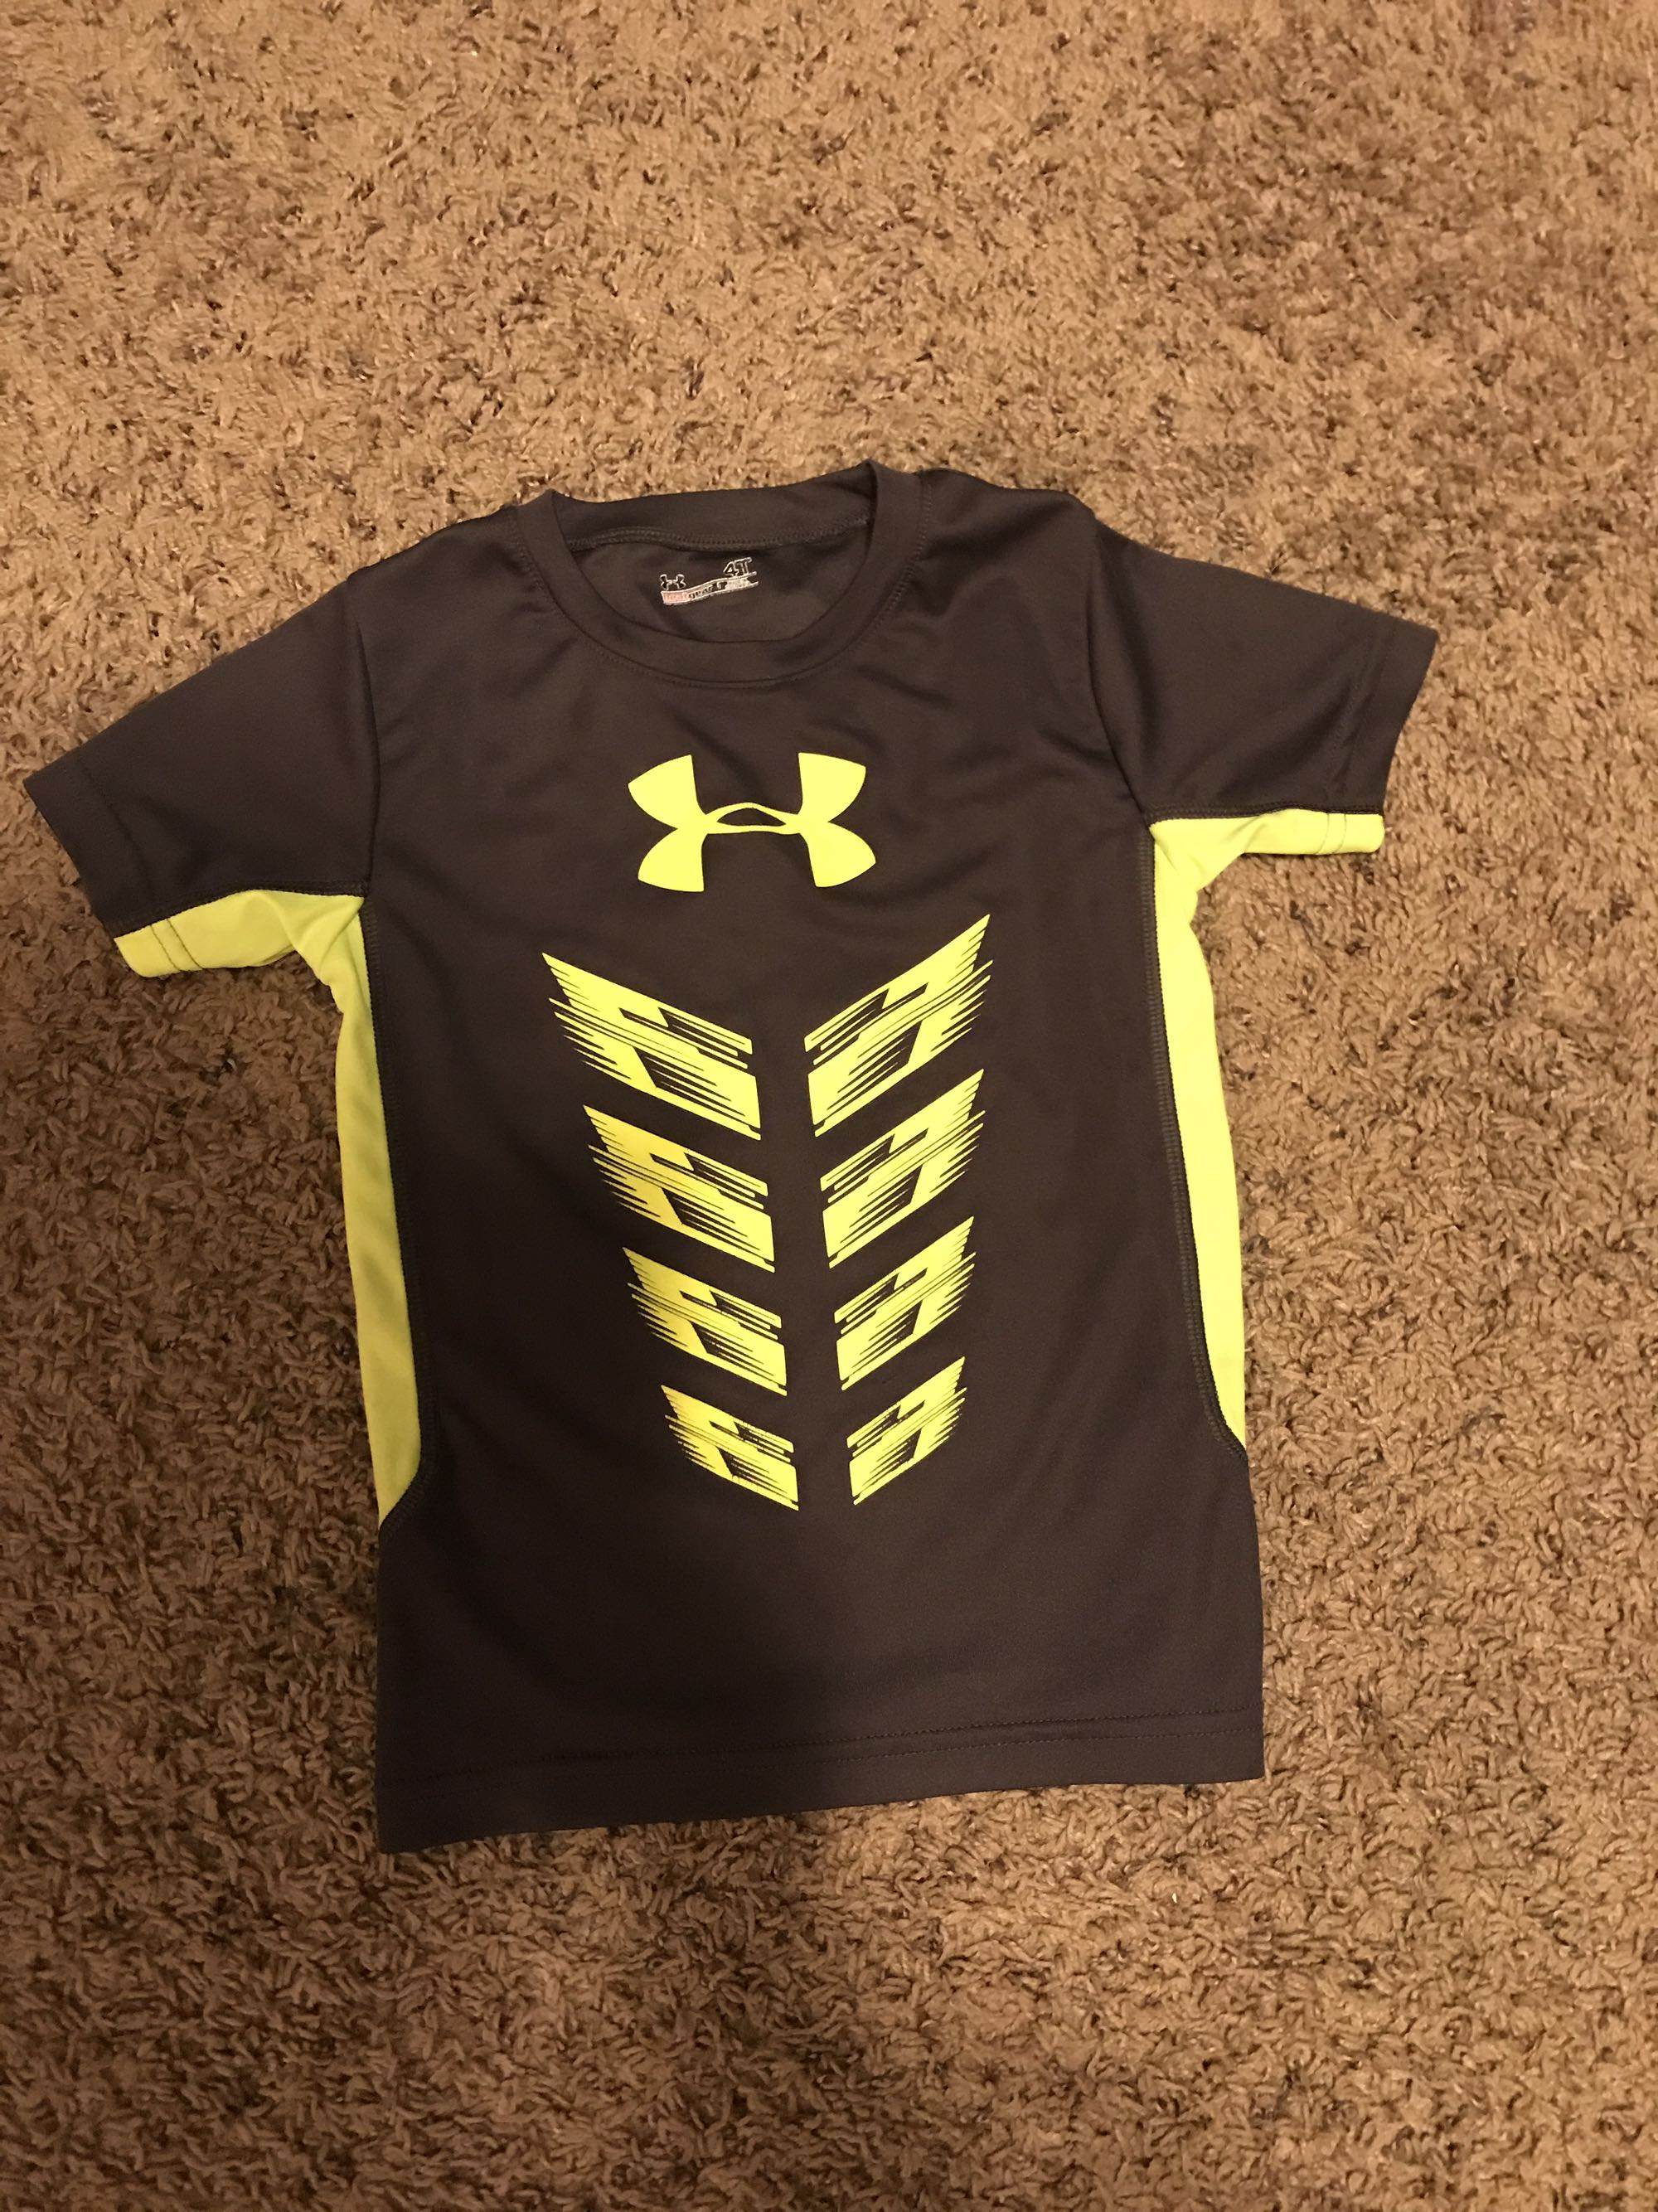 Boys under armour shirt size 4t